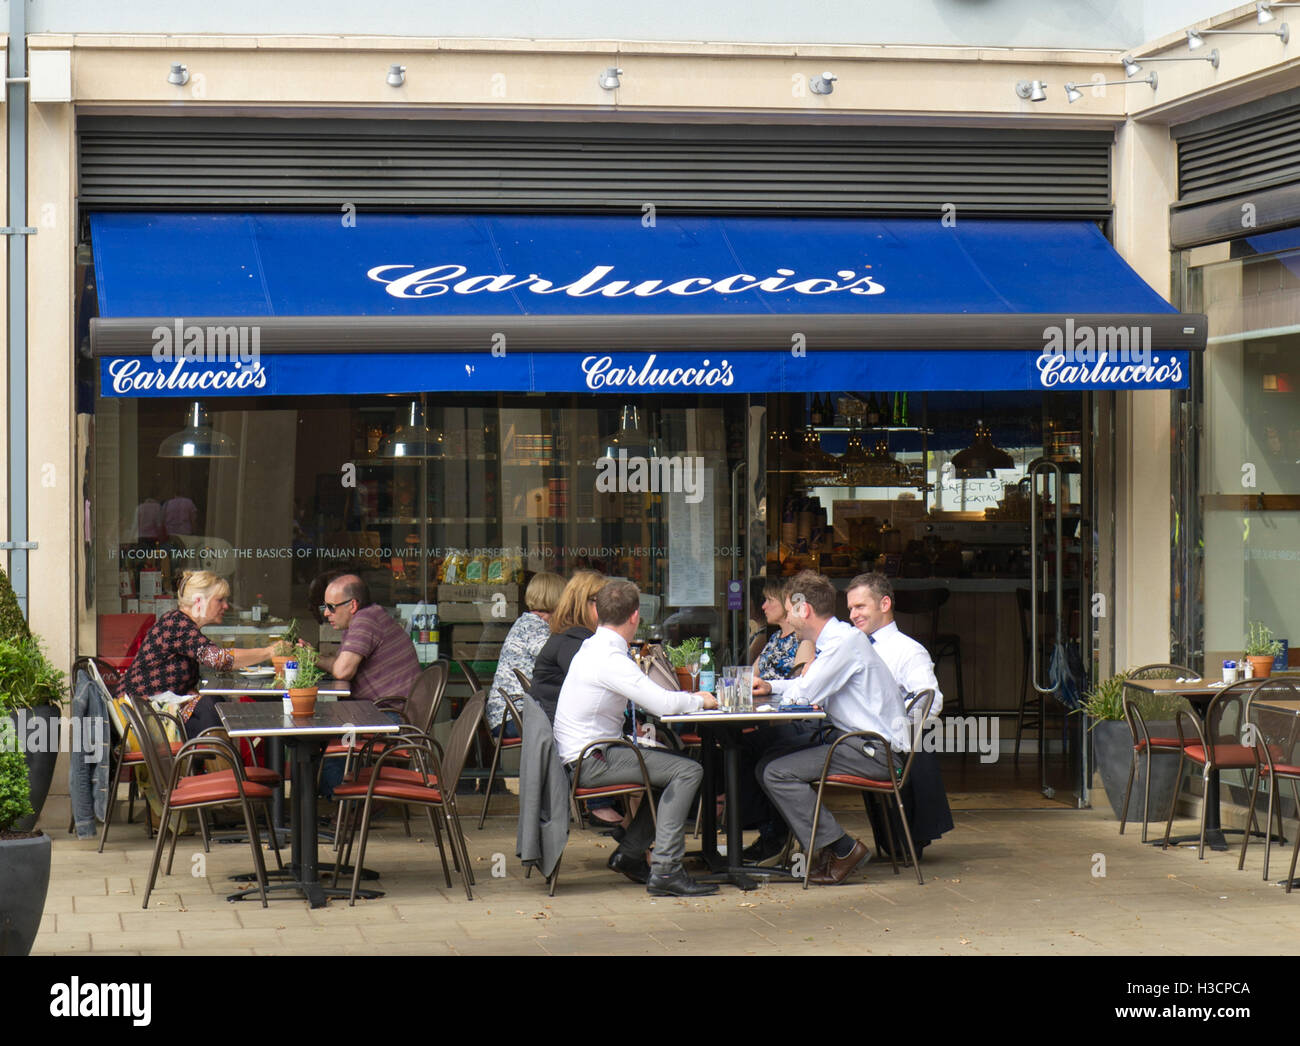 A Chain Of Italian Restaurants In Uk Stock Photos A Chain Of